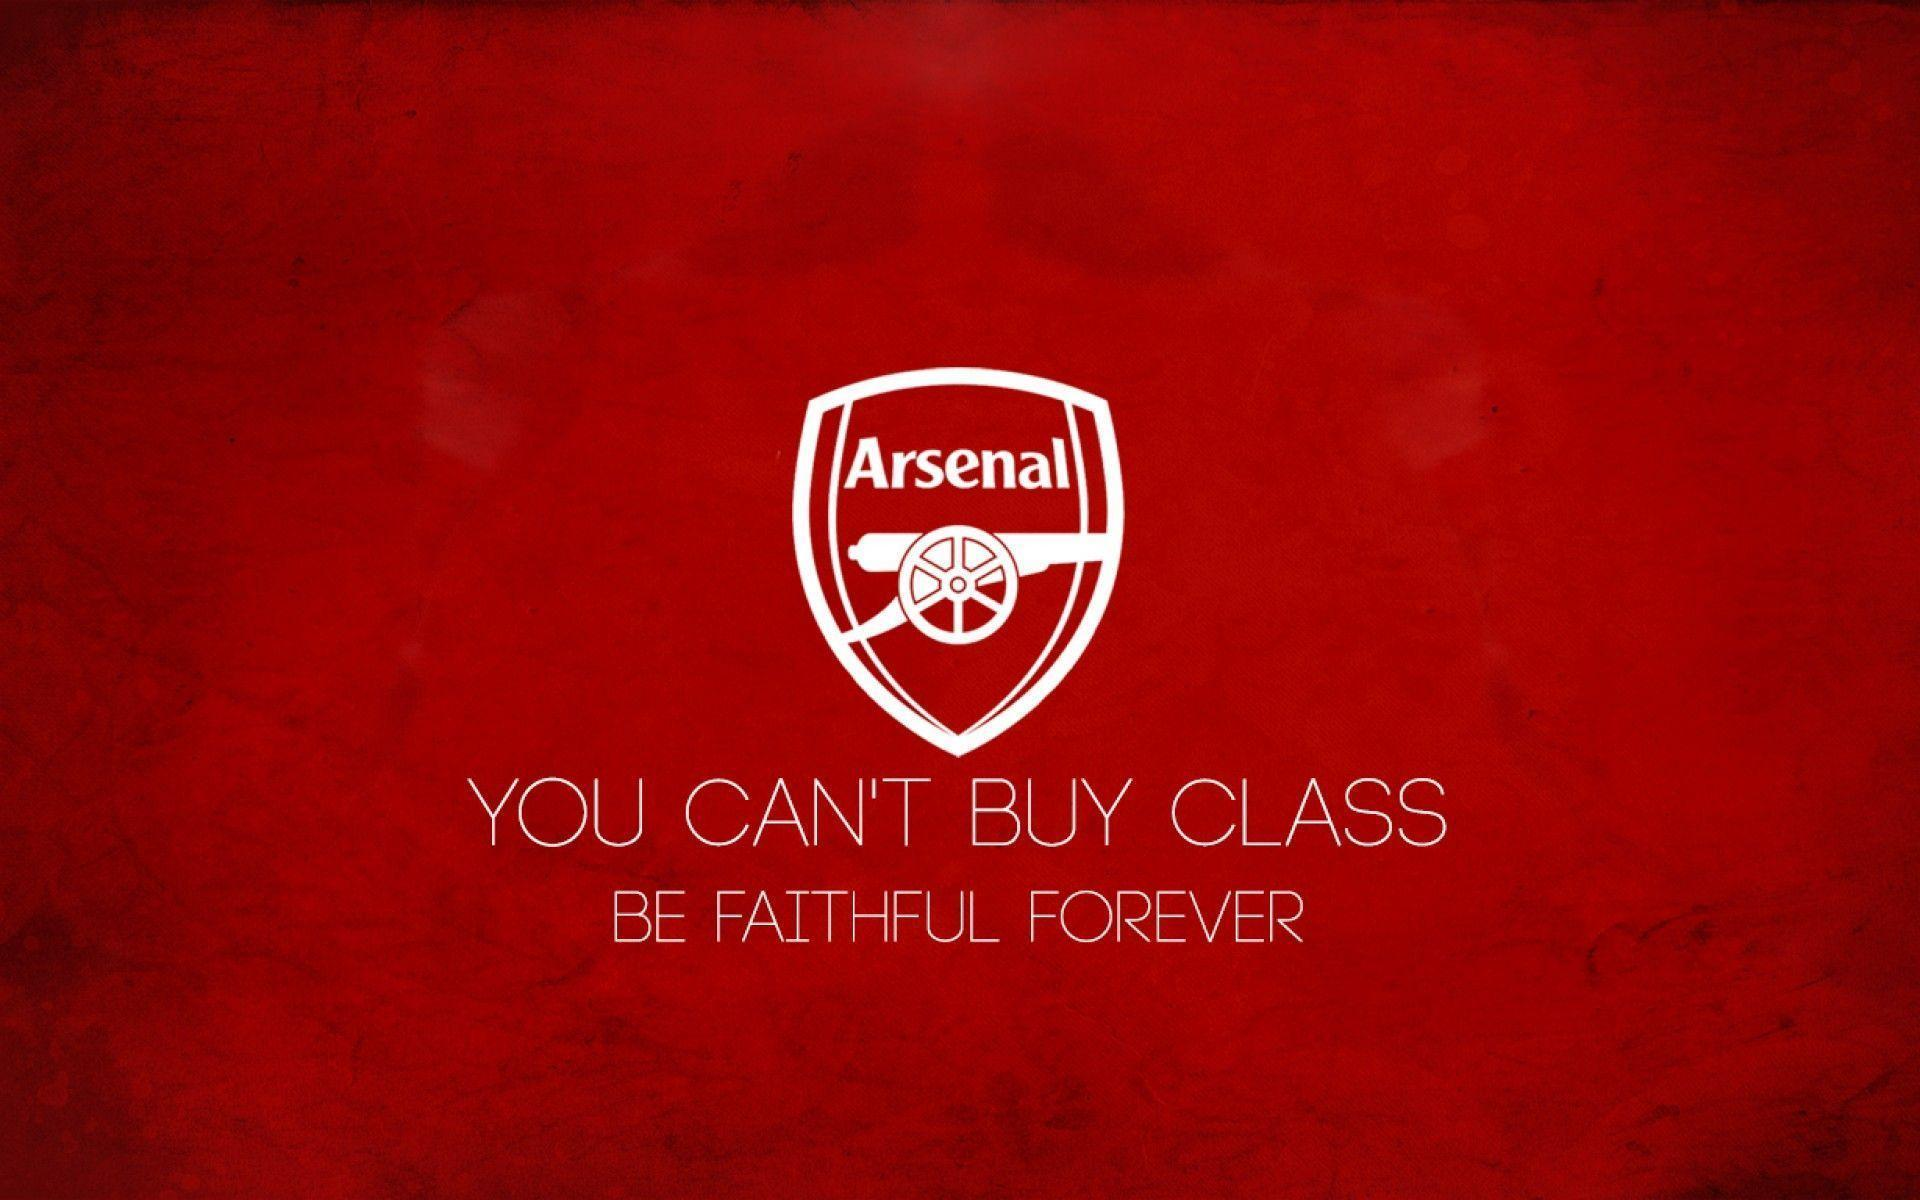 arsenal wallpapers on wallpaperdog